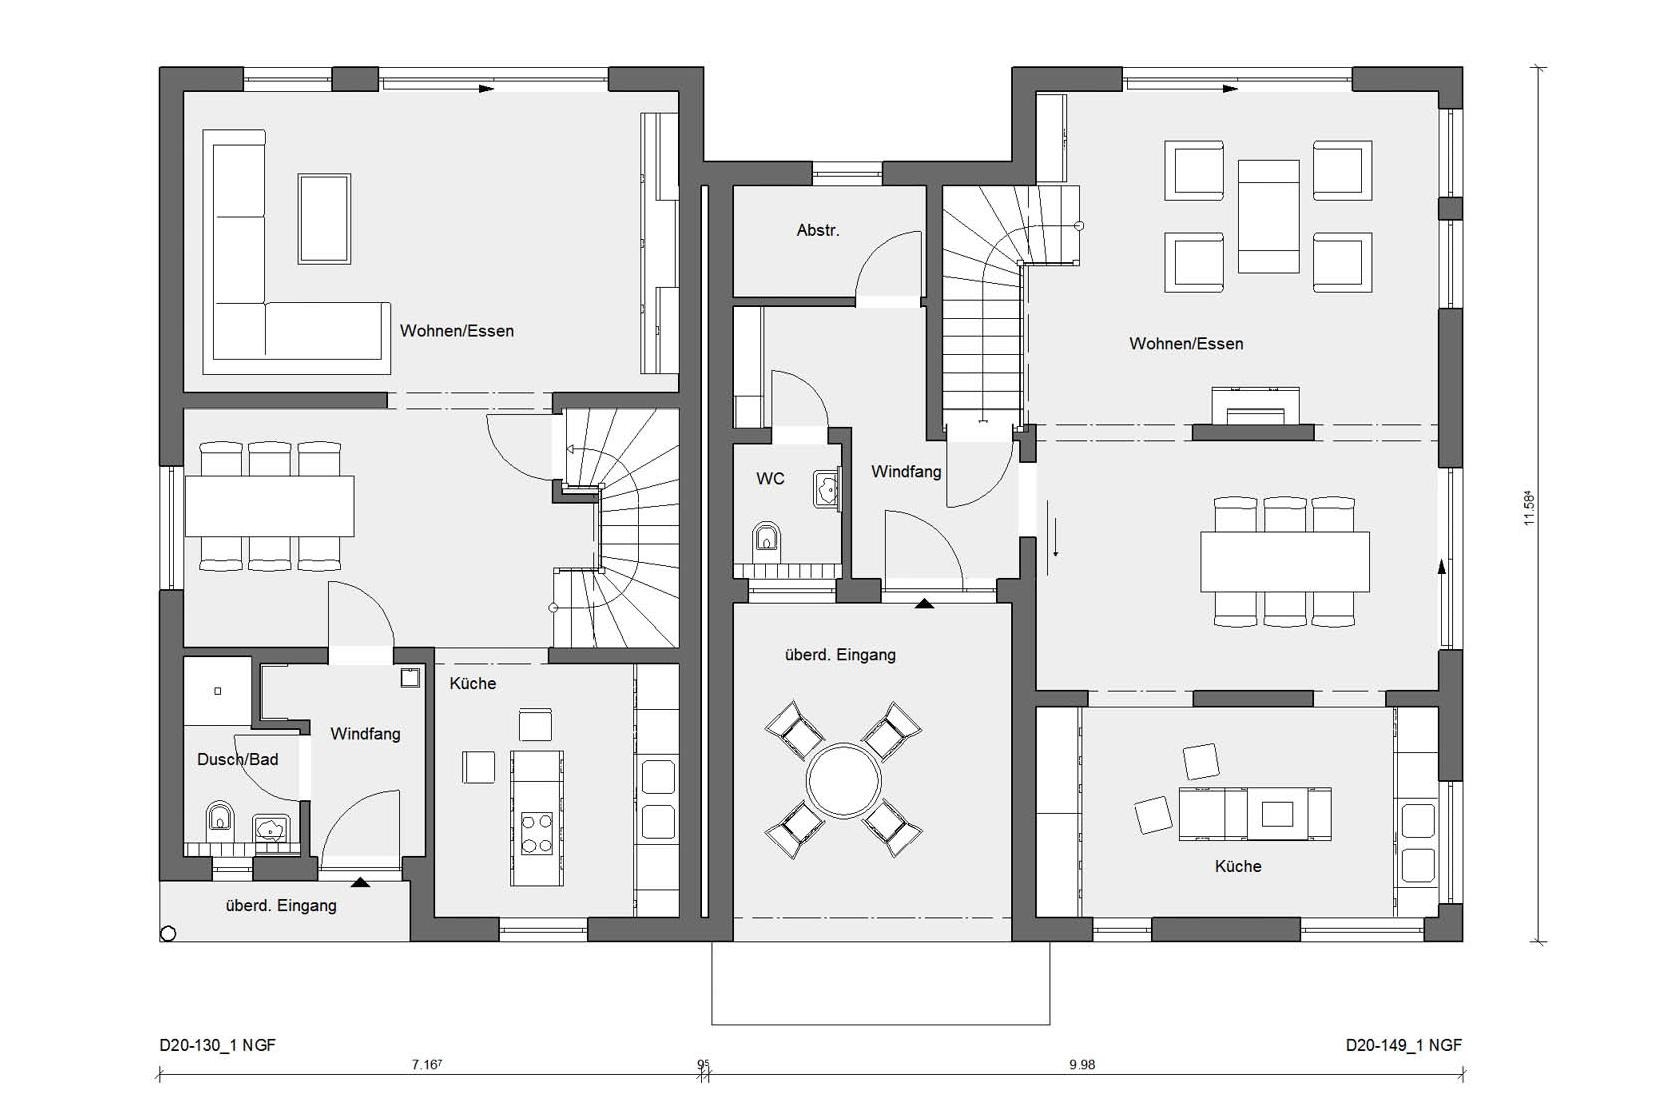 Floor plan ground floor D 20-130.1 / D 20-149.1 penthouse